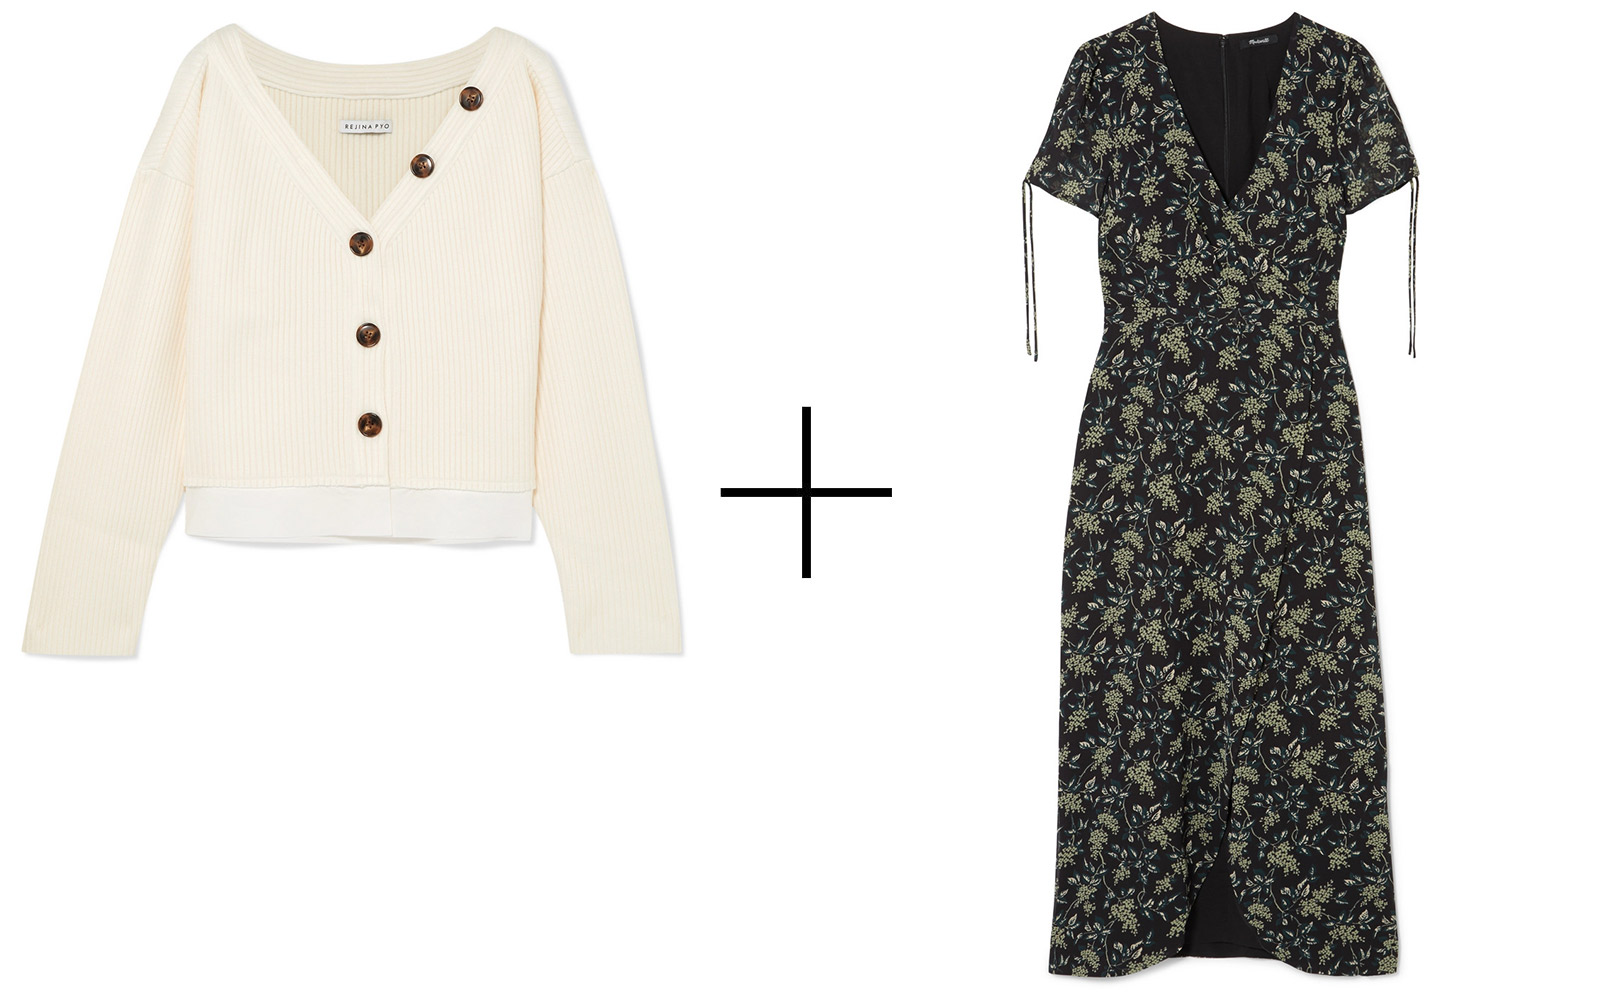 Sweater and Dress Pairings